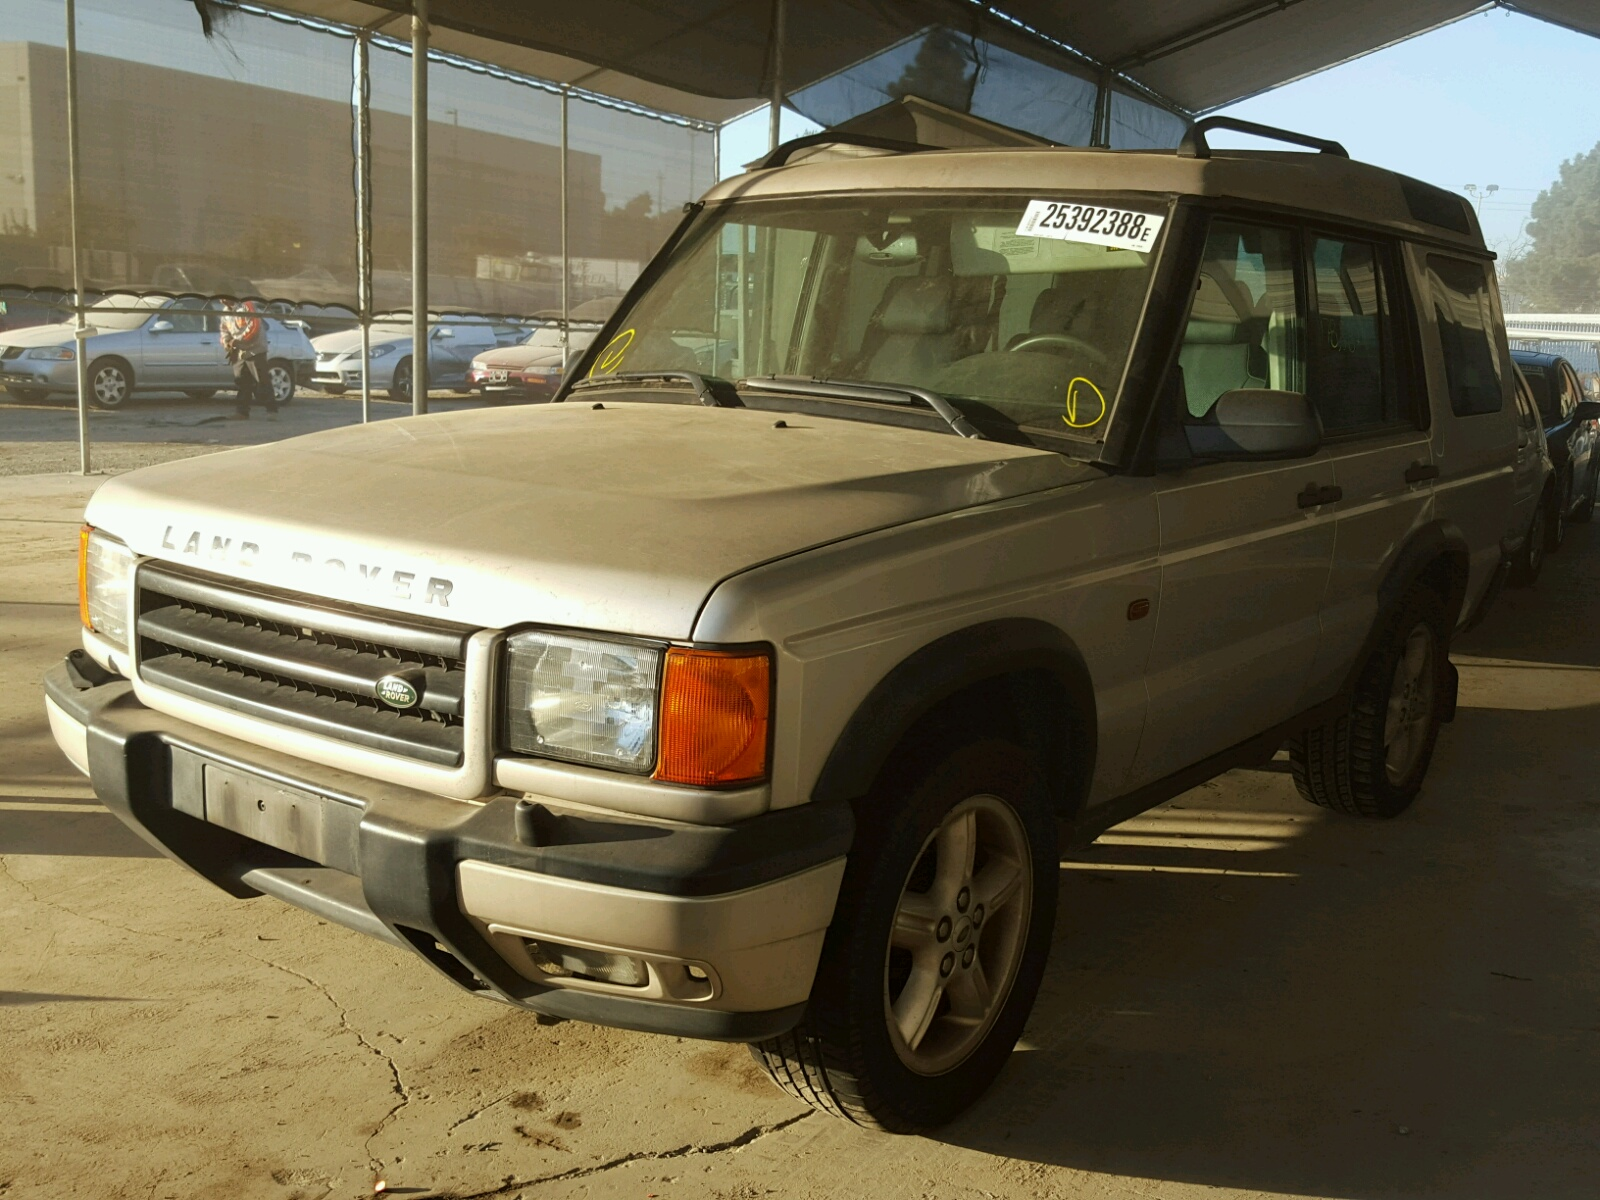 landrover photos range discovery rover zombiedrive information sale land for origin and